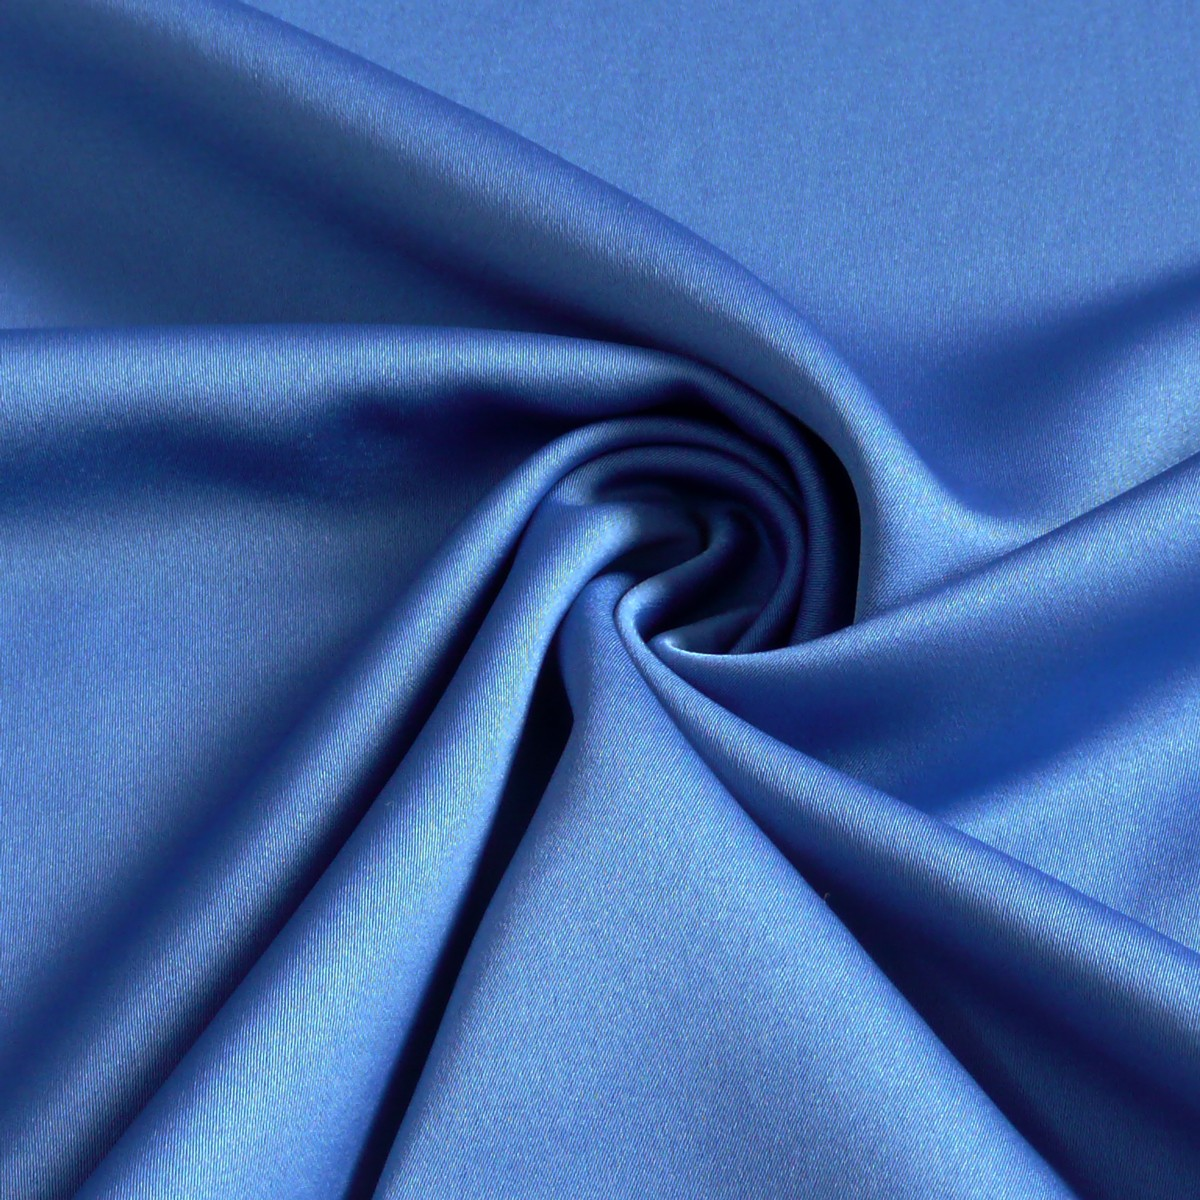 Satin Stoff Meterware Royal Micro Satin Stoff Meterware Royal Blau Alle Stoffe Stoffe